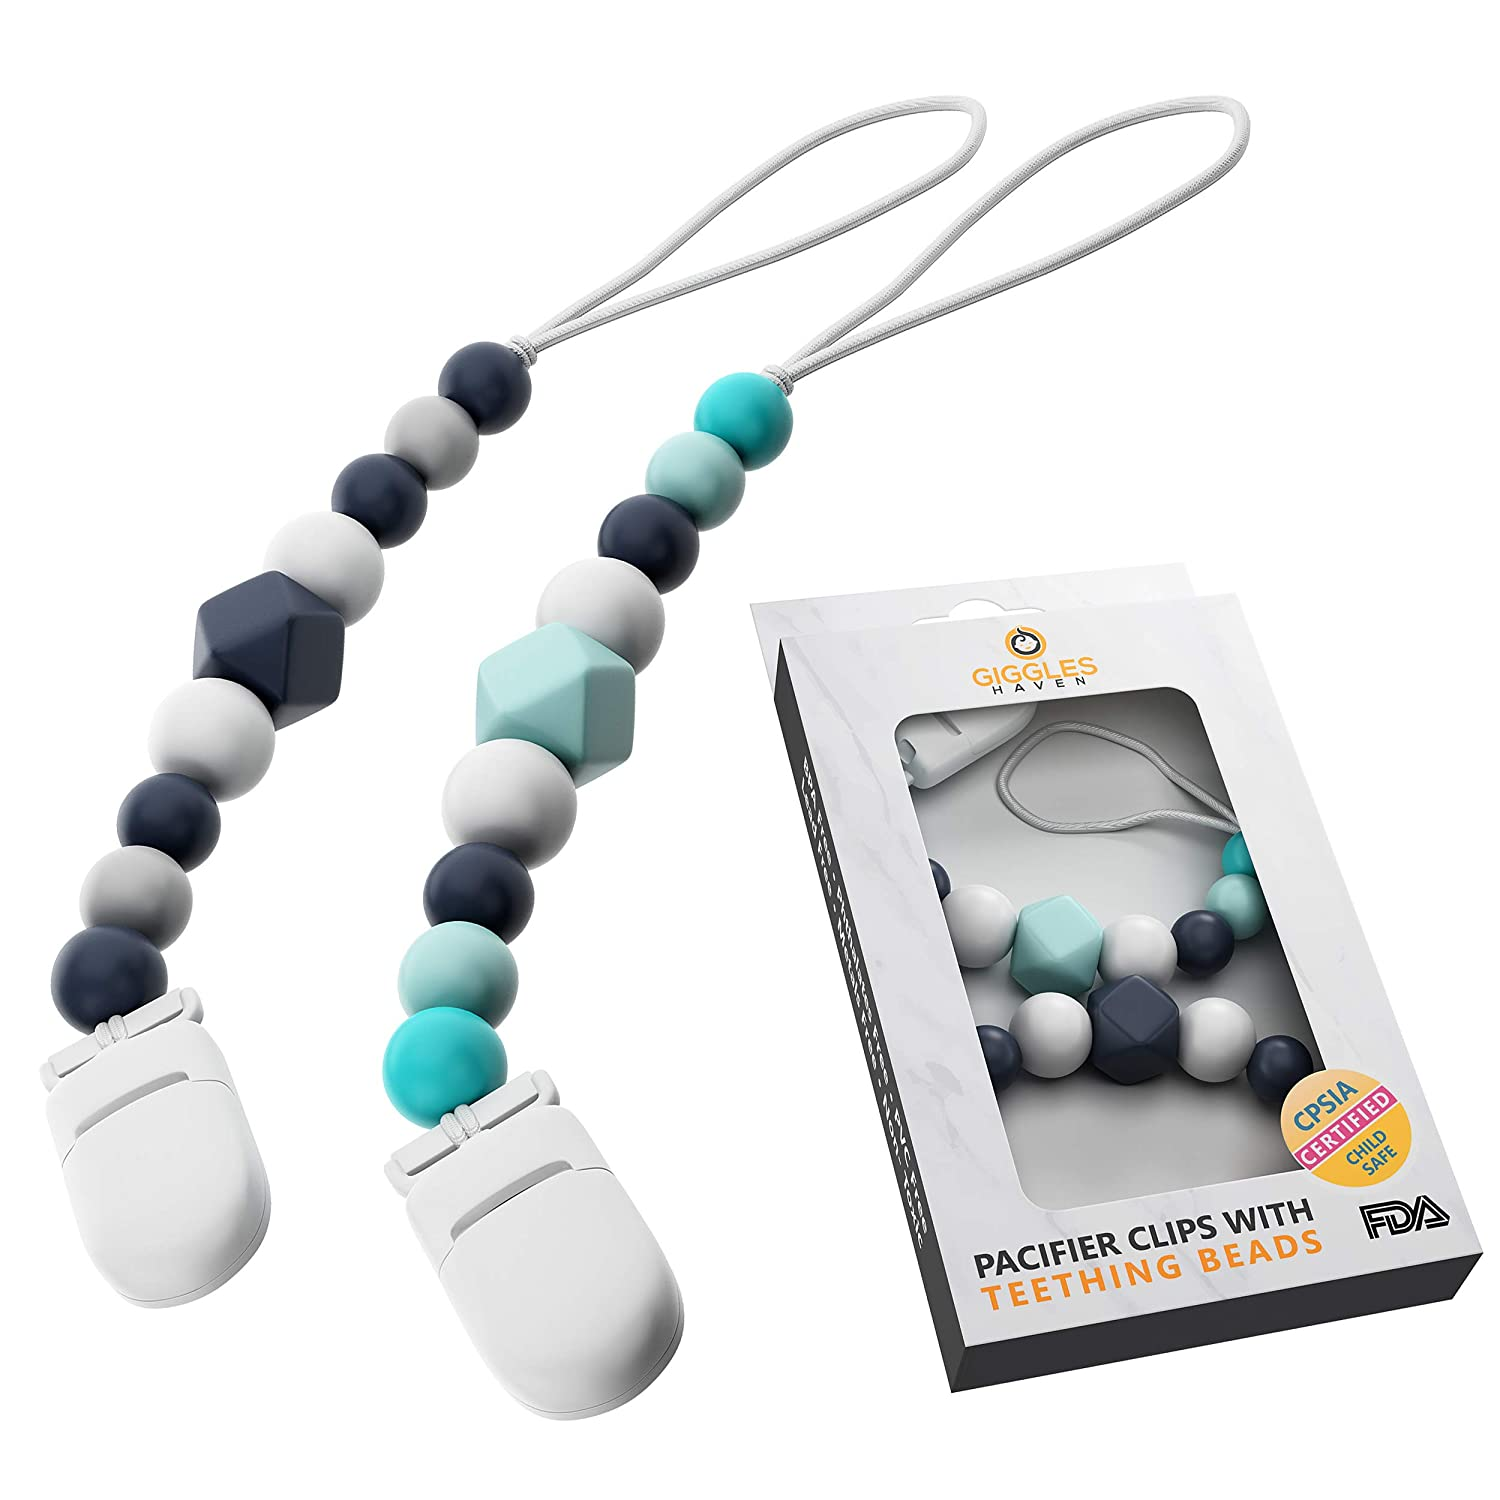 Perfect Baby Shower Gifts for Boy or Girl BPA-Free Silicone Beaded Teethers Pacifier Clip Set 2-Pack for Teething Relief Pacifier Holder Clips for Newborn Babies and Toddlers